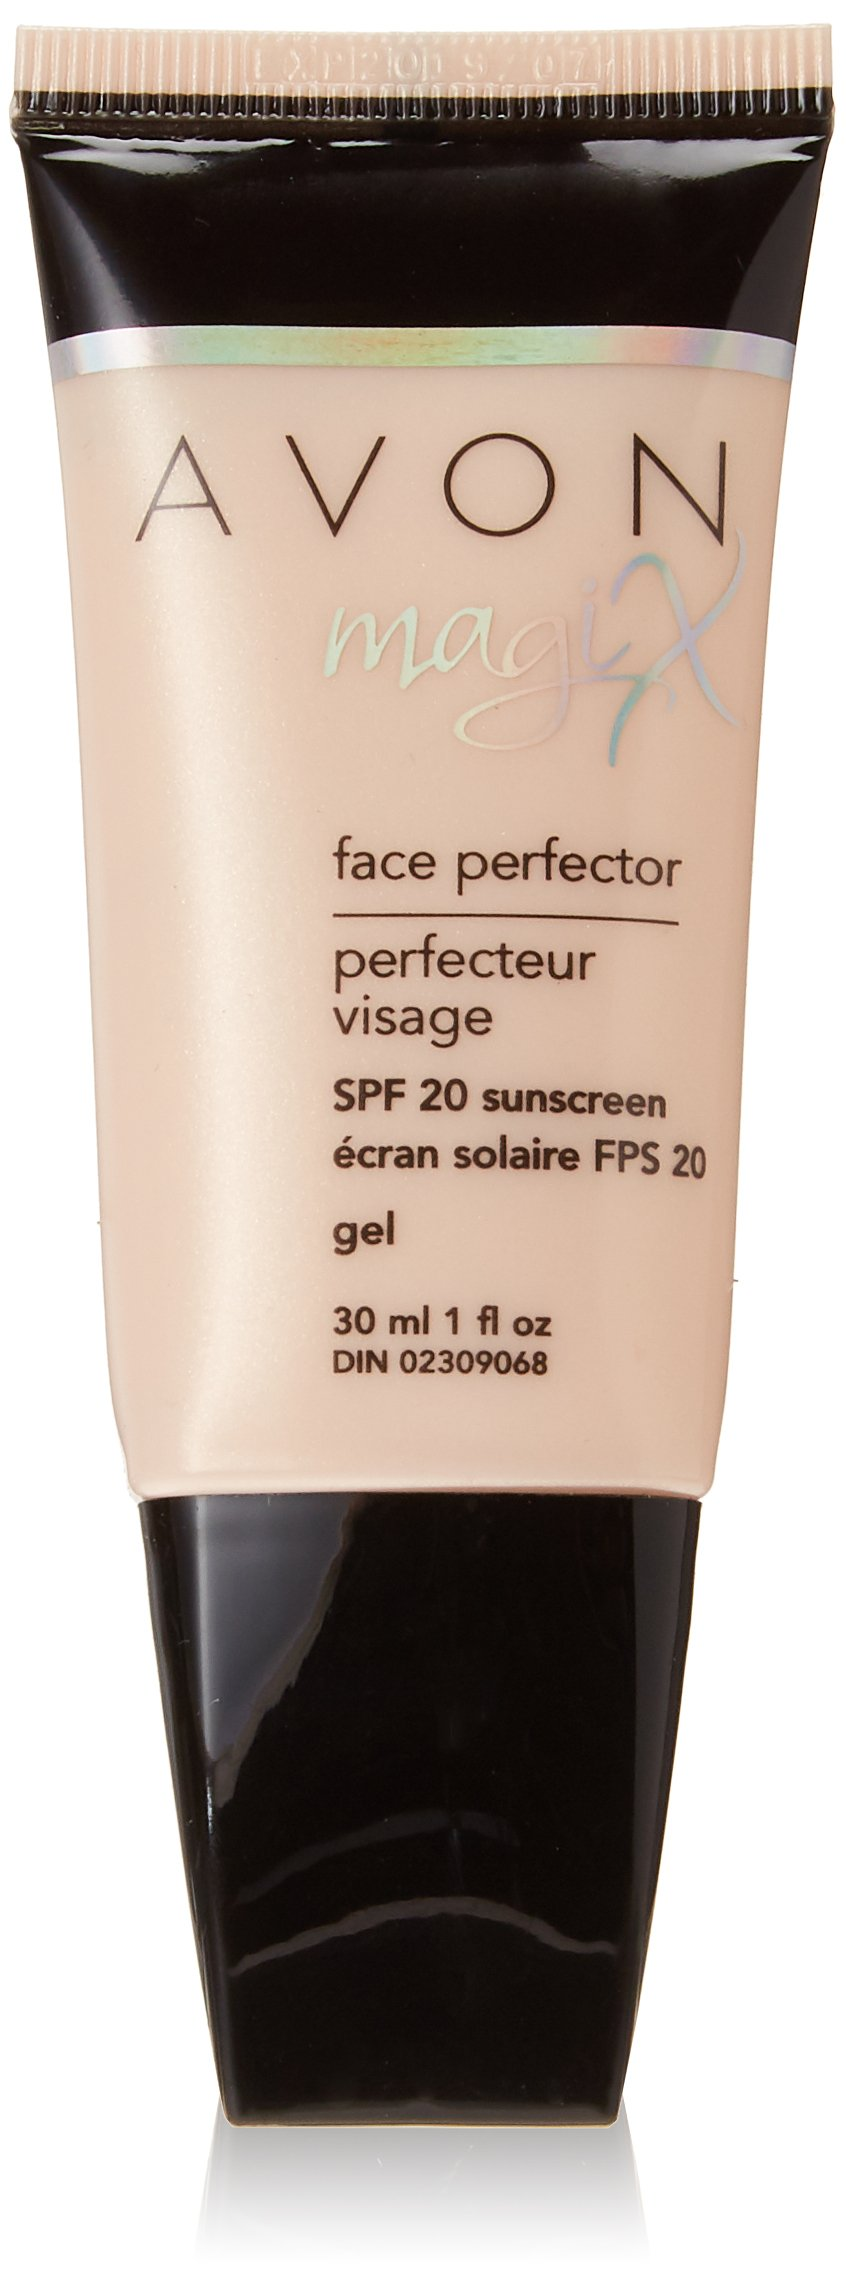 Avon Face Perfector Spf 20 Sunscreen, New Packet